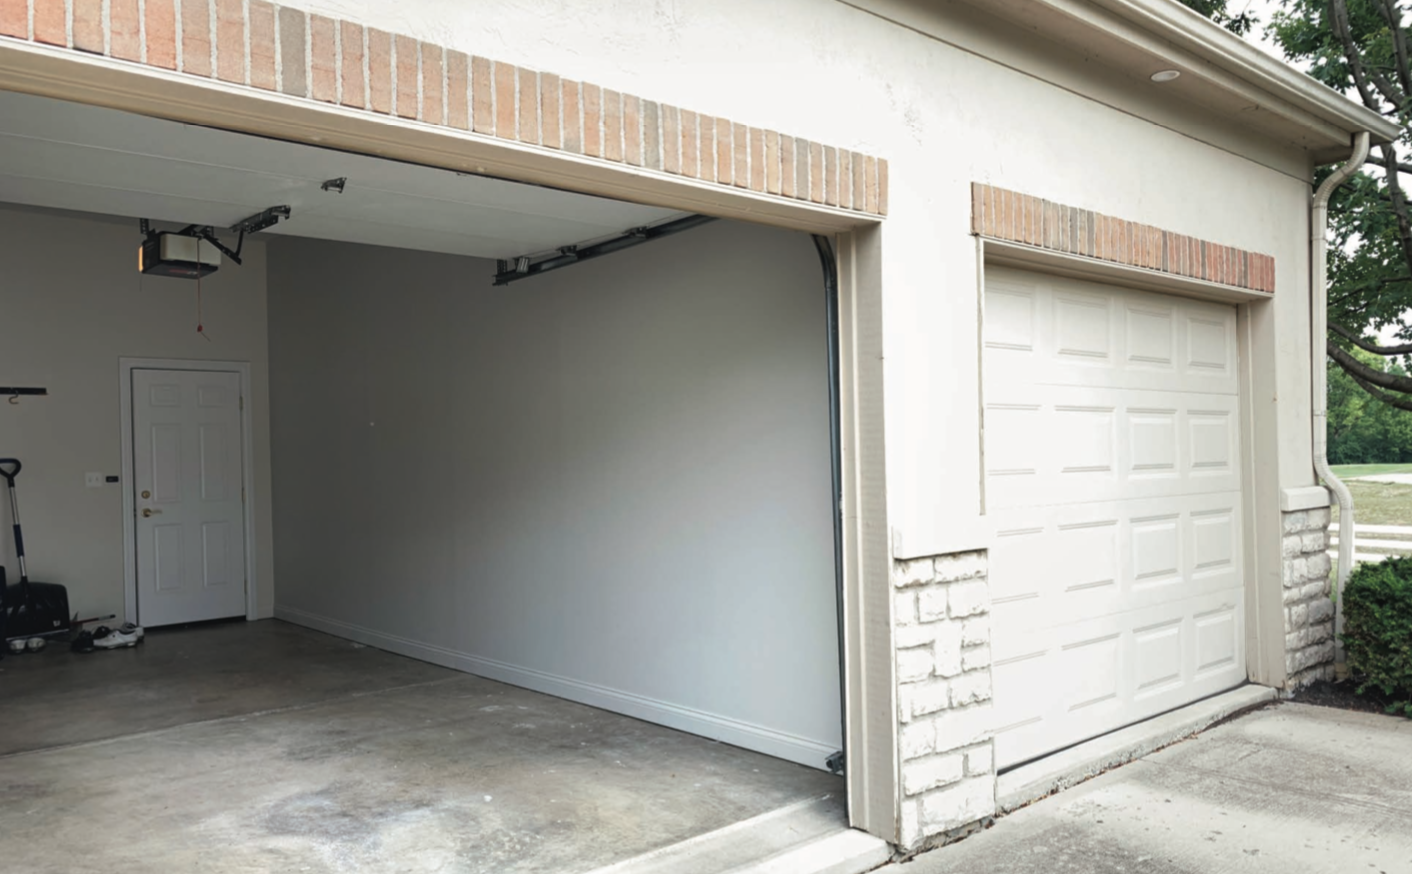 How We Turned A 3 Car Garage Into A Home Golf Simulator Room Garage Remodeling In Columbus Ohio Dave Fox